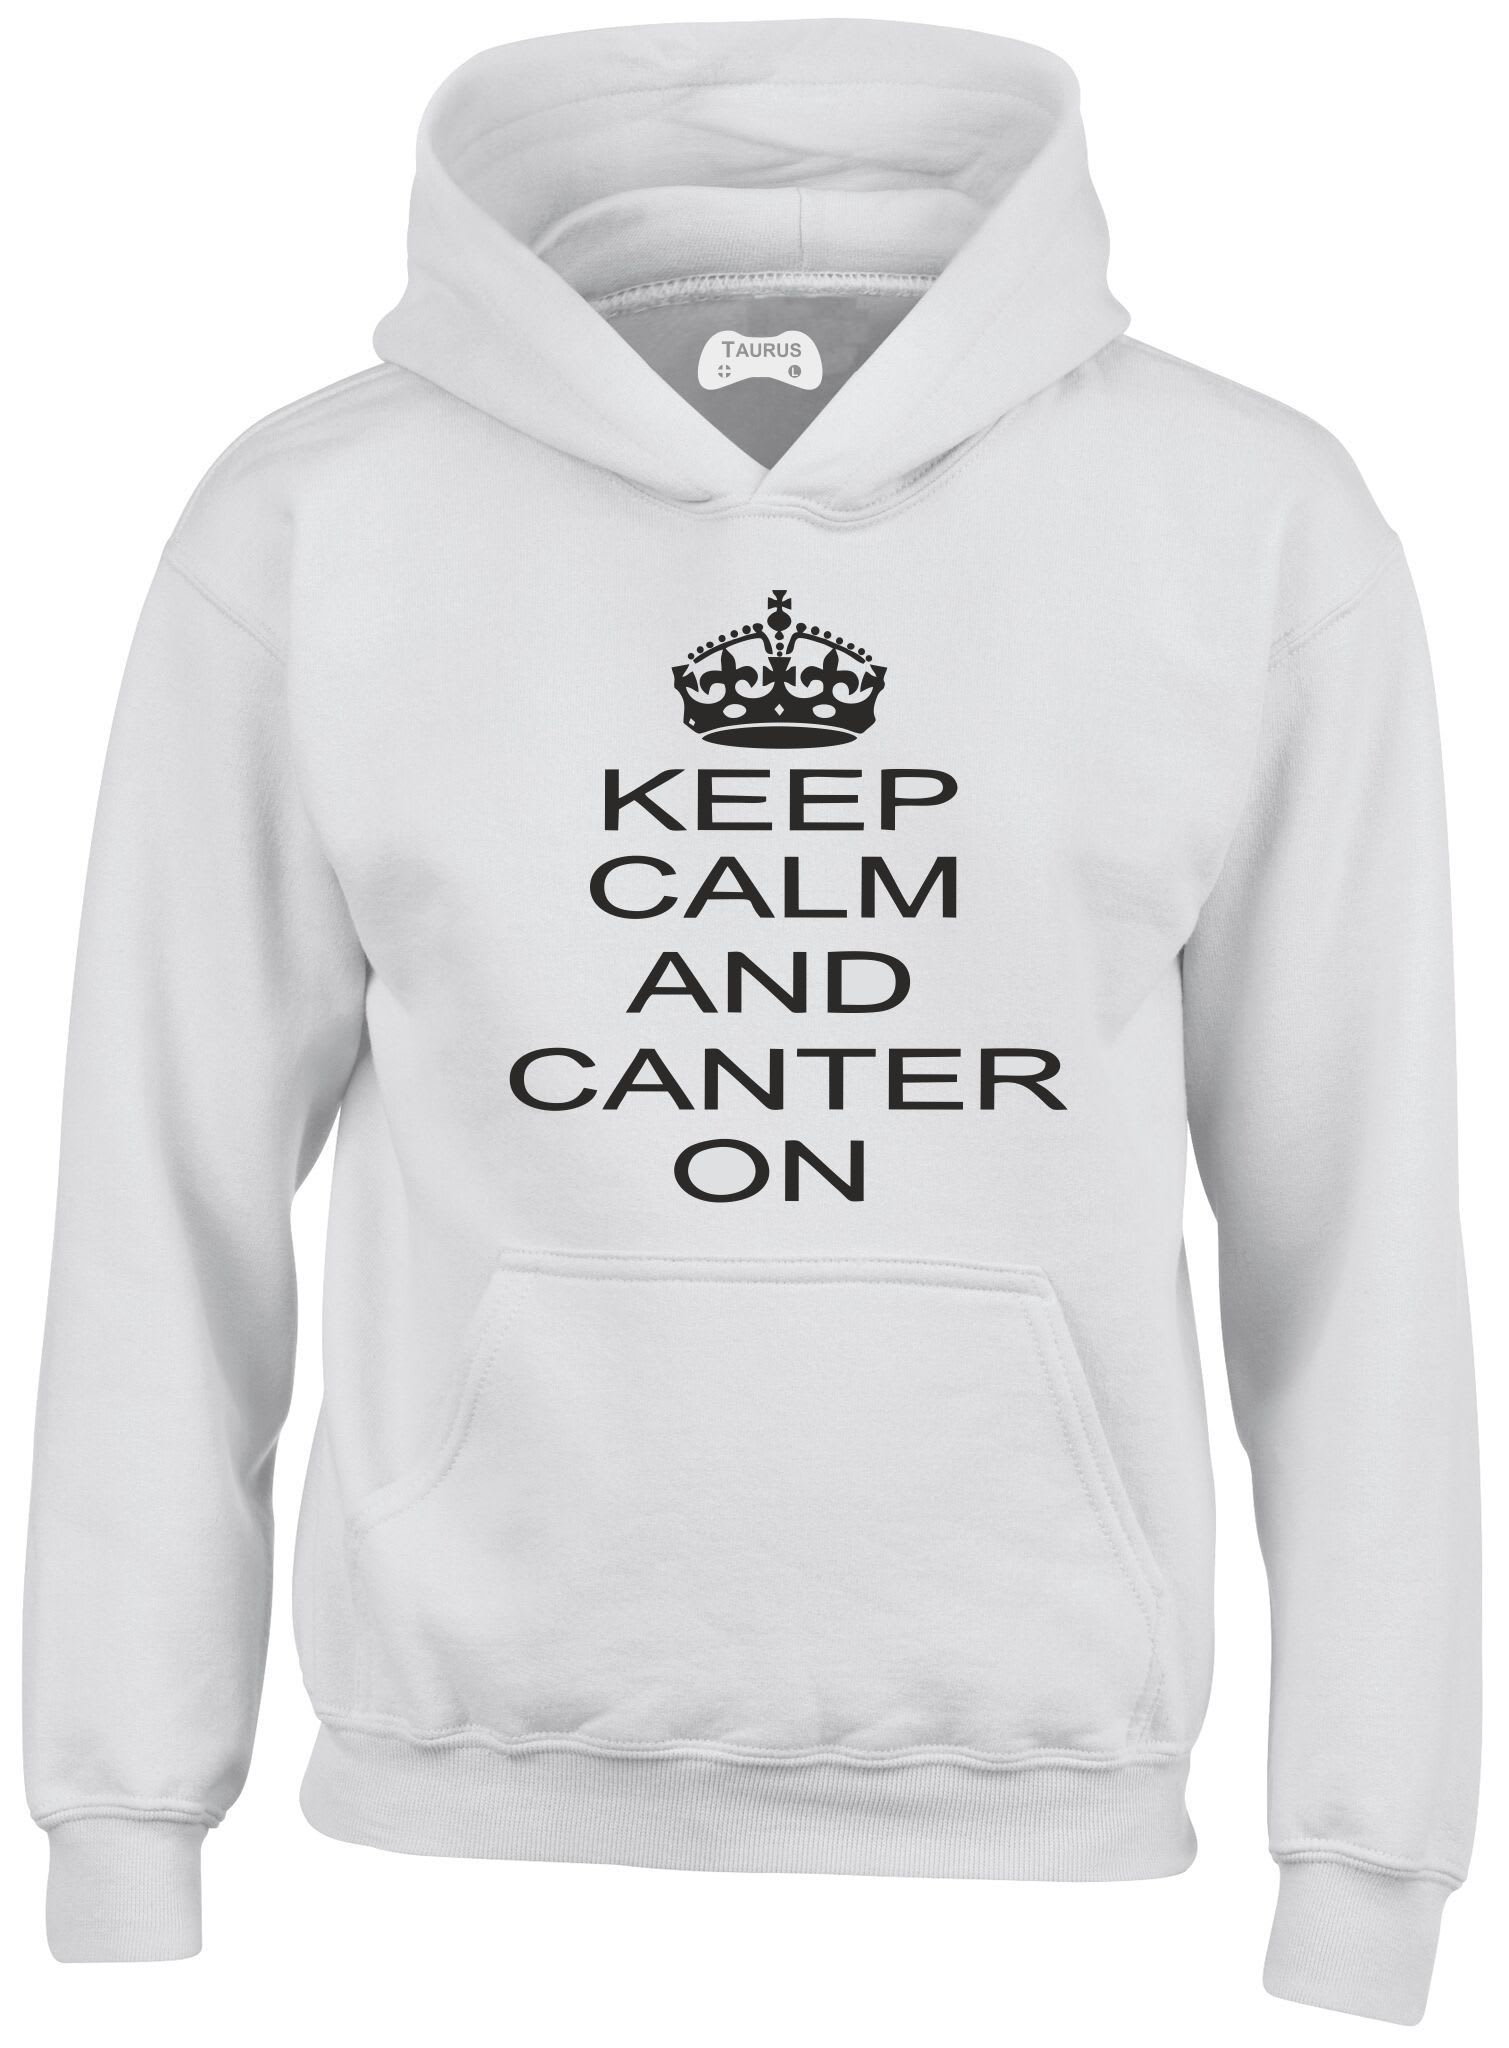 Canter On Kids Hoodie